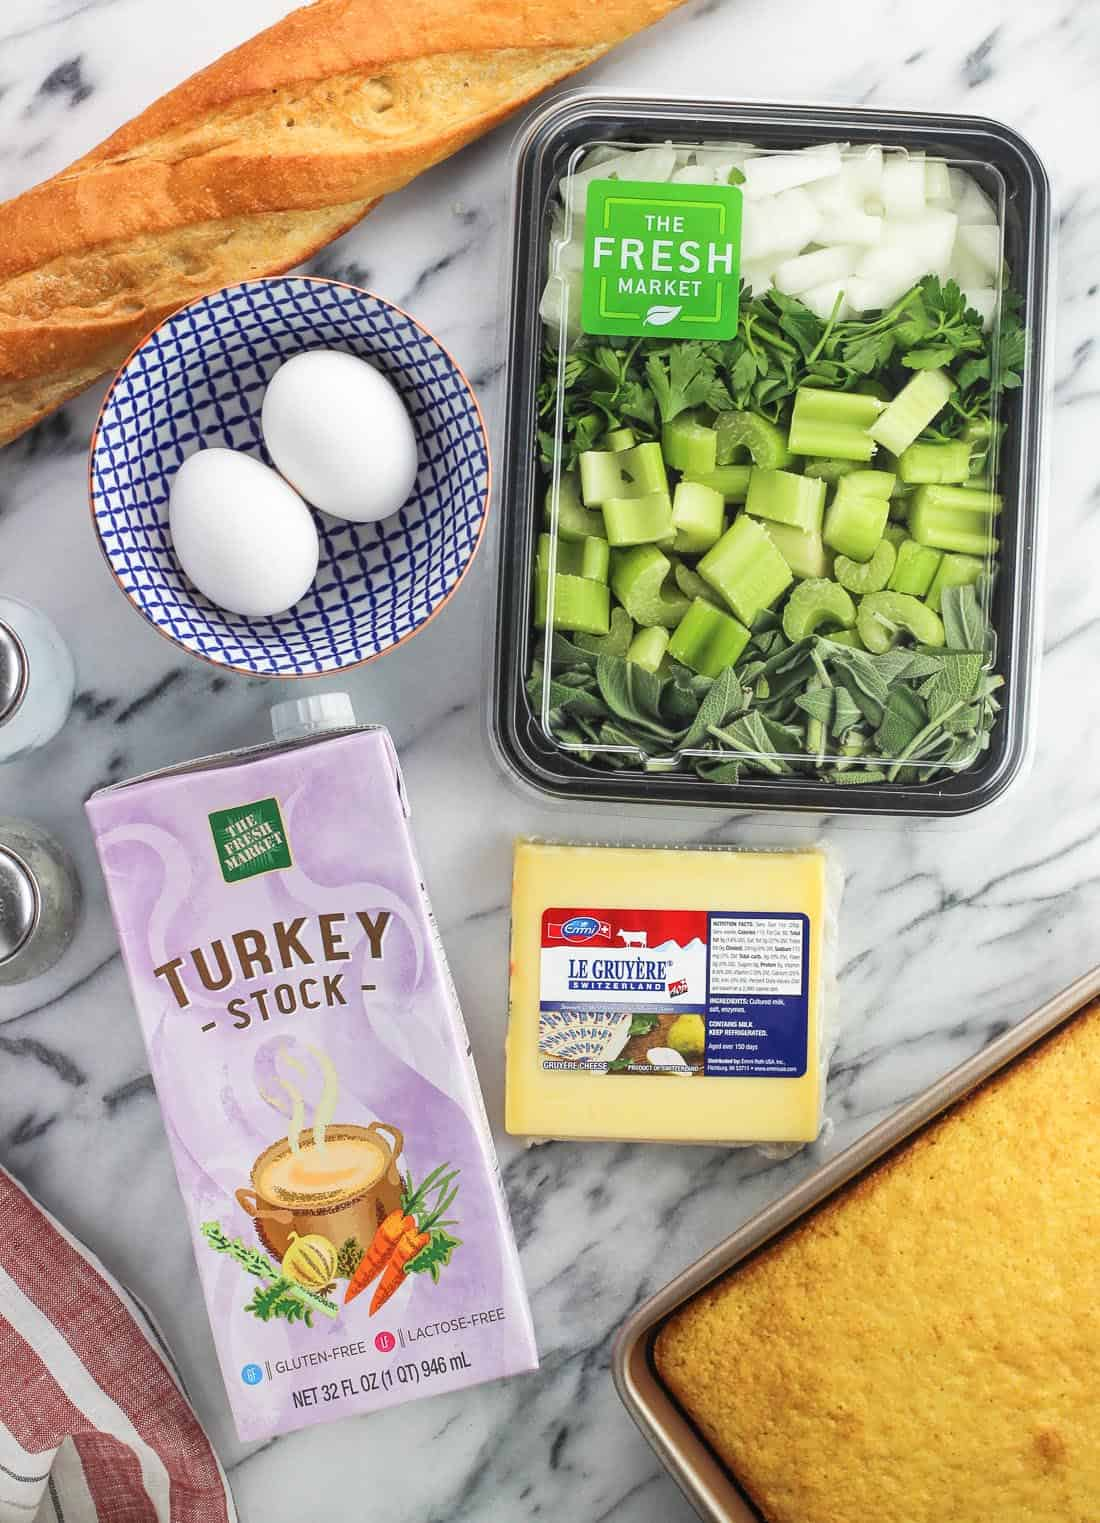 Recipe ingredients on a marble board, including a baguette, eggs, celery, herbs, onion, Gruyere, a carton of turkey stock, and a pan of cornbread